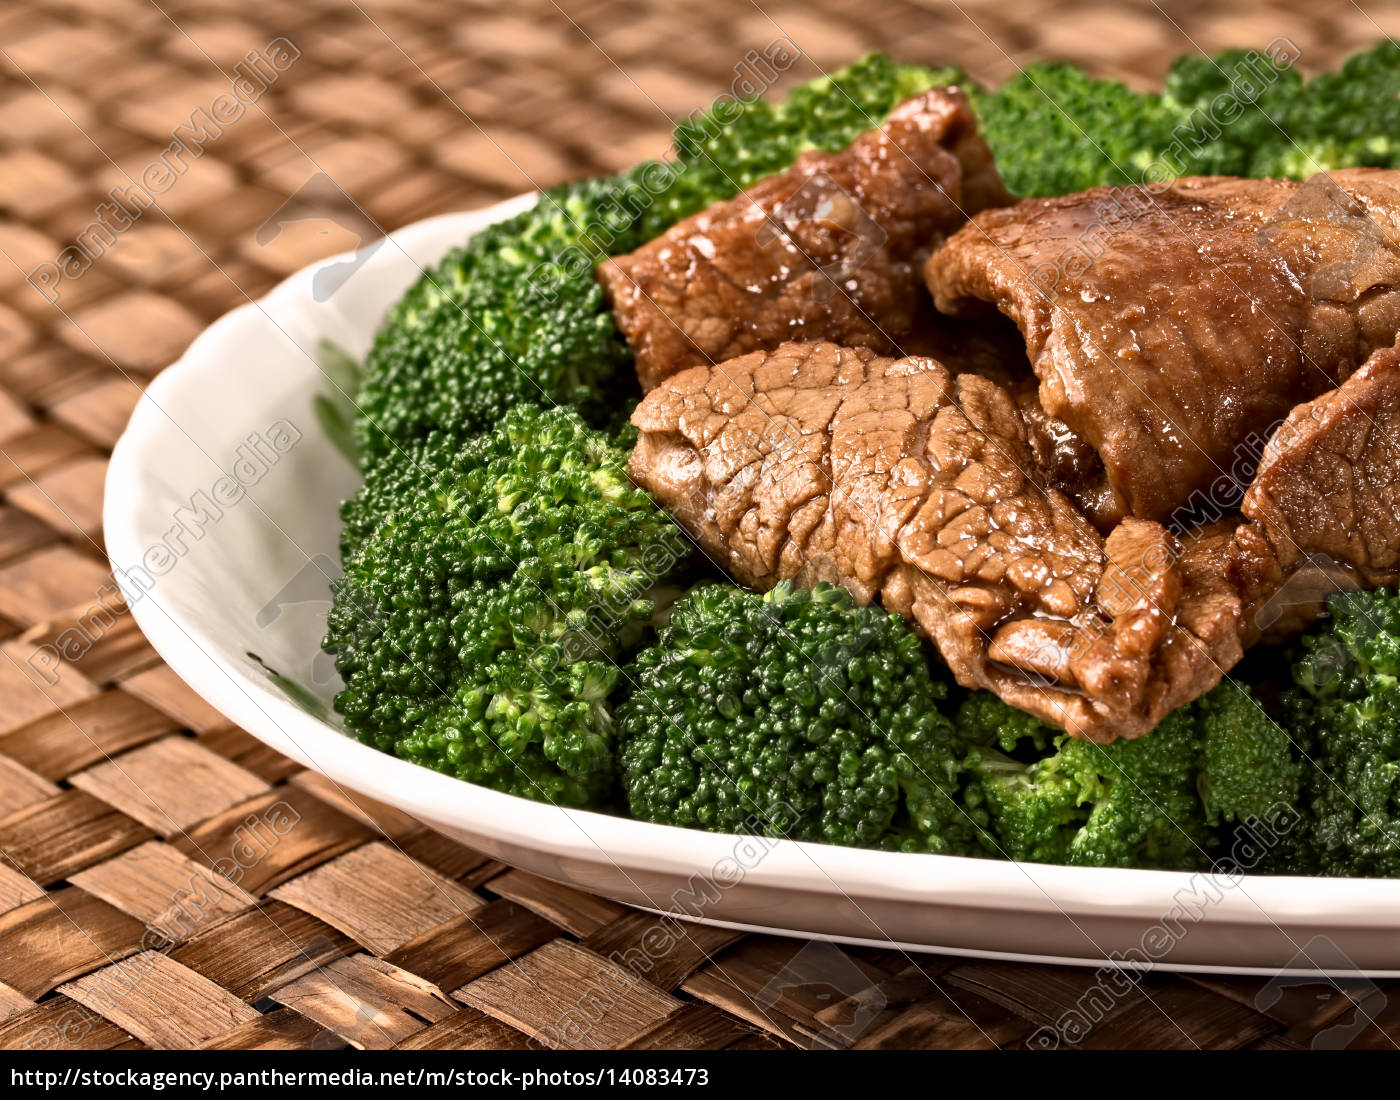 american, chinese, beef, and, broccoli - 14083473